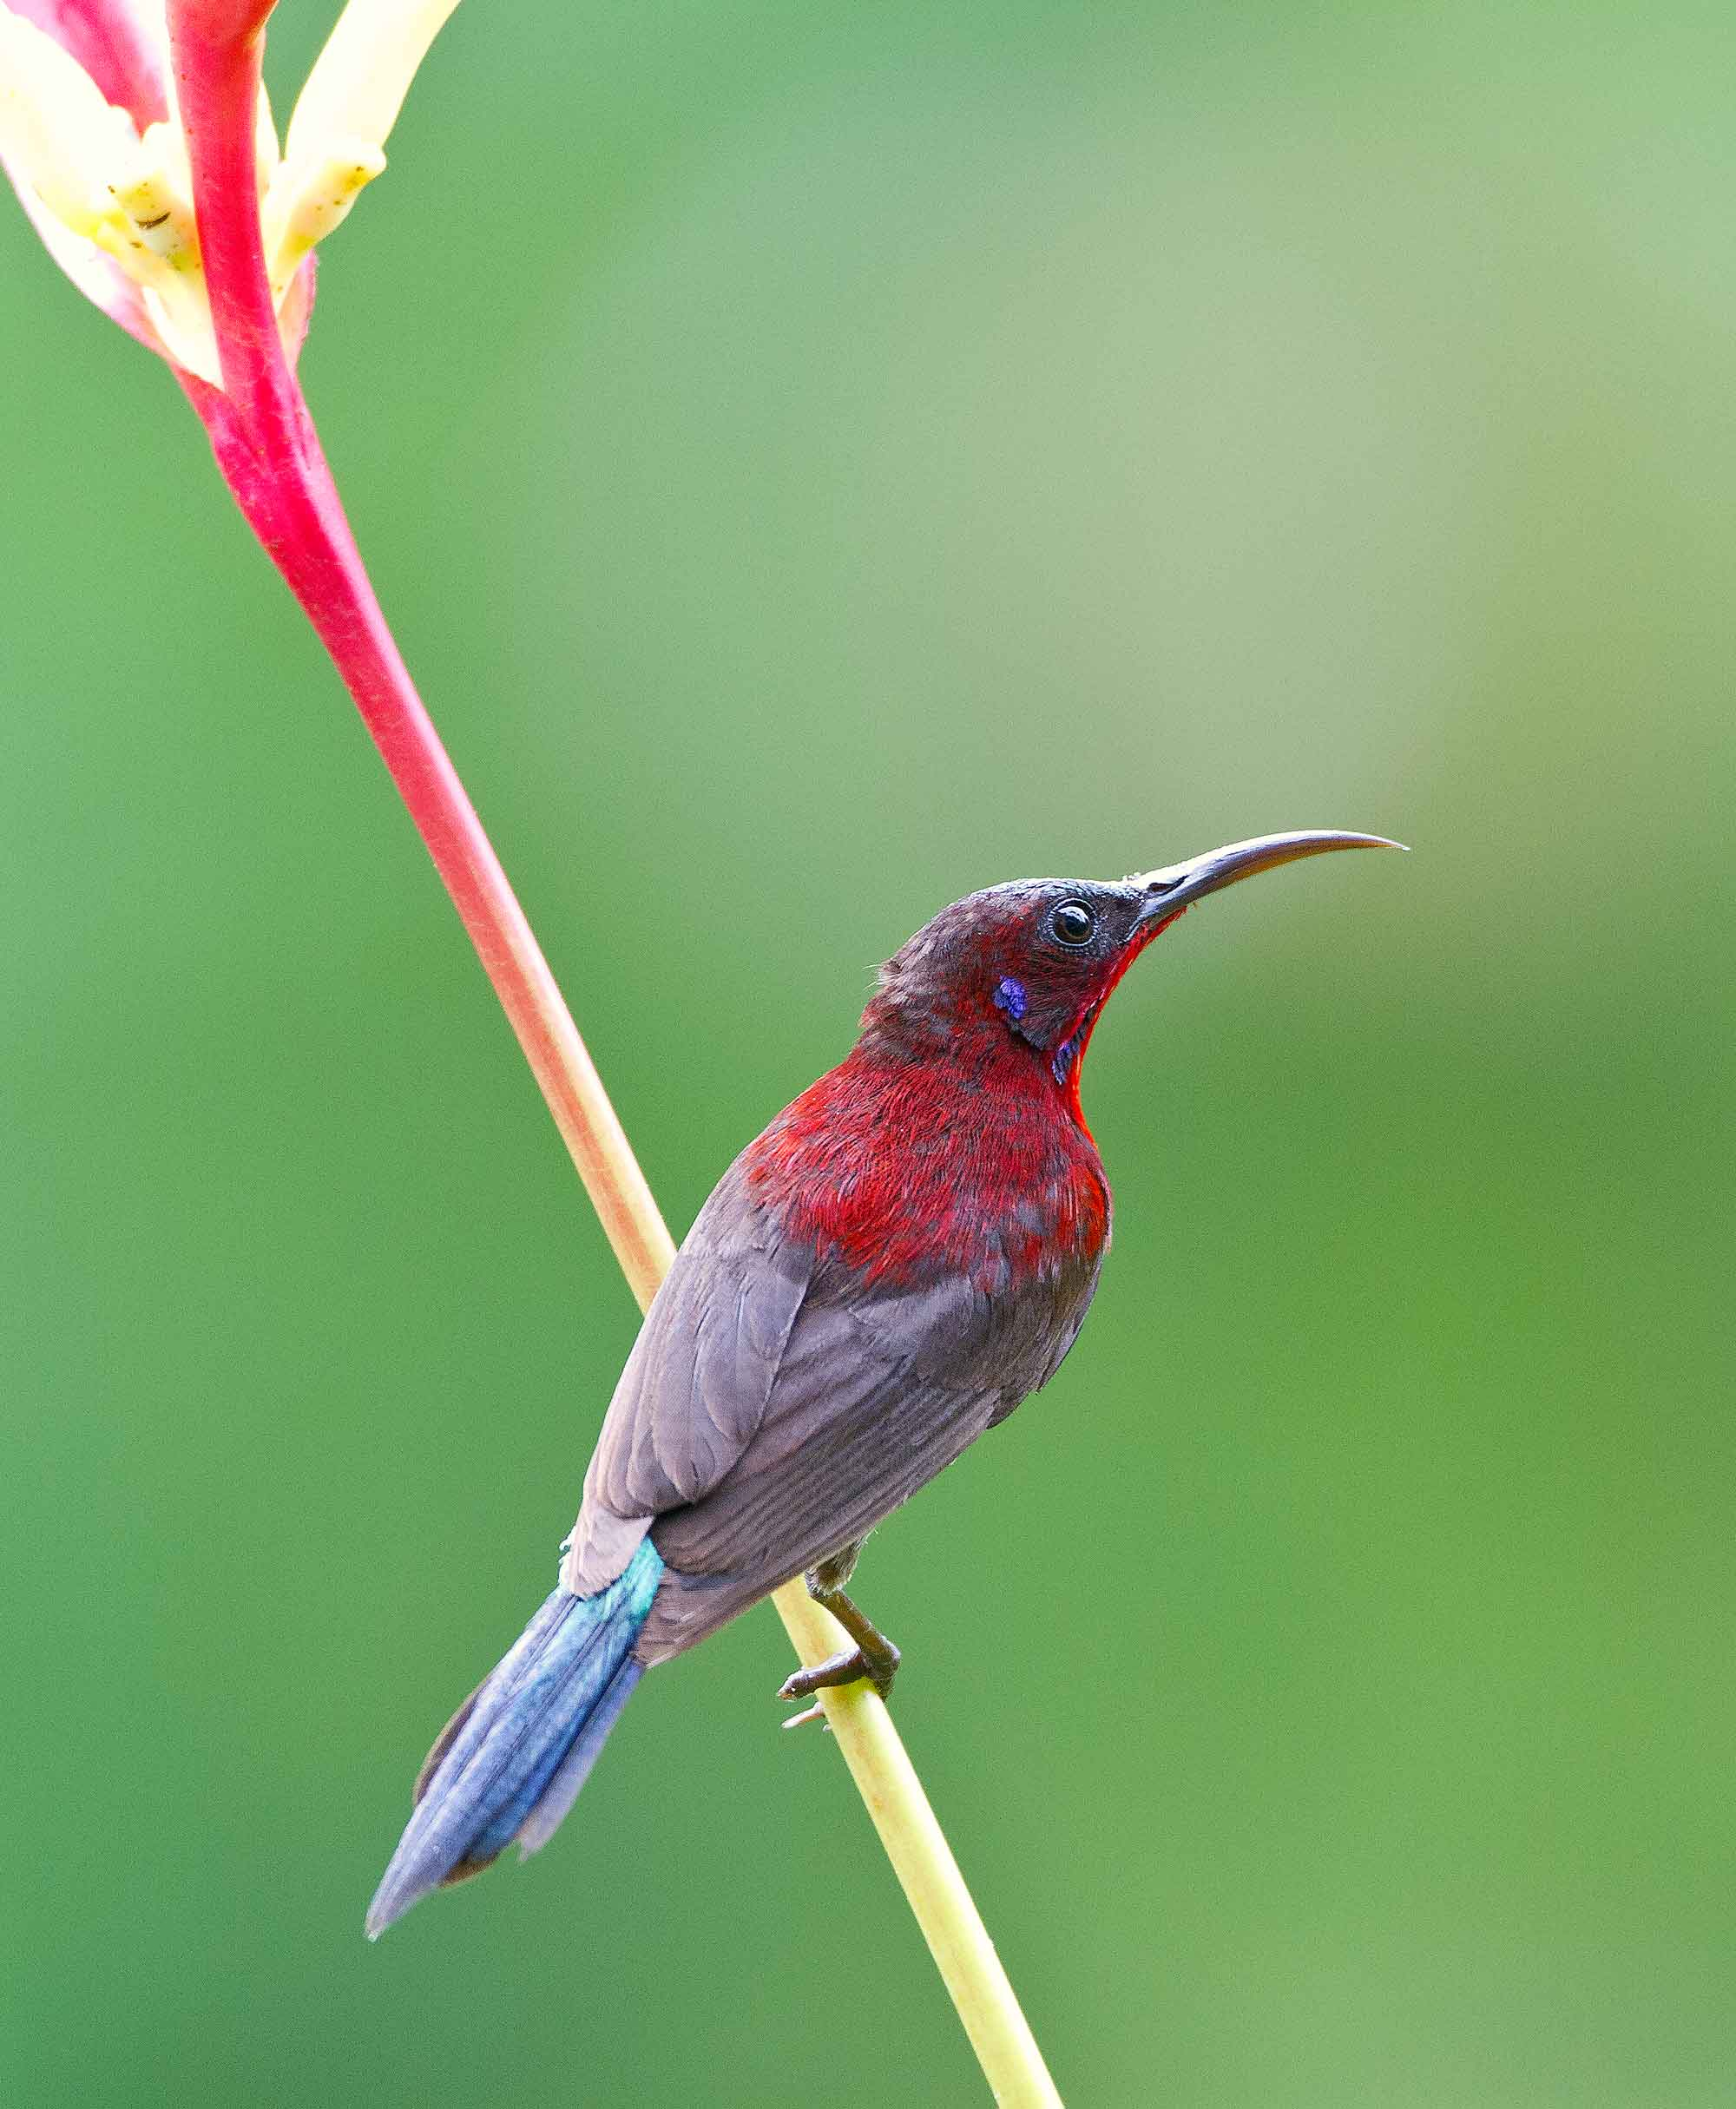 """Vigors's sunbirds (Aethopyga vigorsii) are also endemic to the Western Ghats. """"They are found only in the northern Western Ghats, which is weird because the southern Western Ghats generally have a higher percentage of endemic species,"""" says Dalvi. Vigors's sunbirds forage actively in small flocks in the upper levels of the foothills of these hills, in forests and edges of forests. Photo: Rajan Hatiskar, CC BY-SA 4.0"""